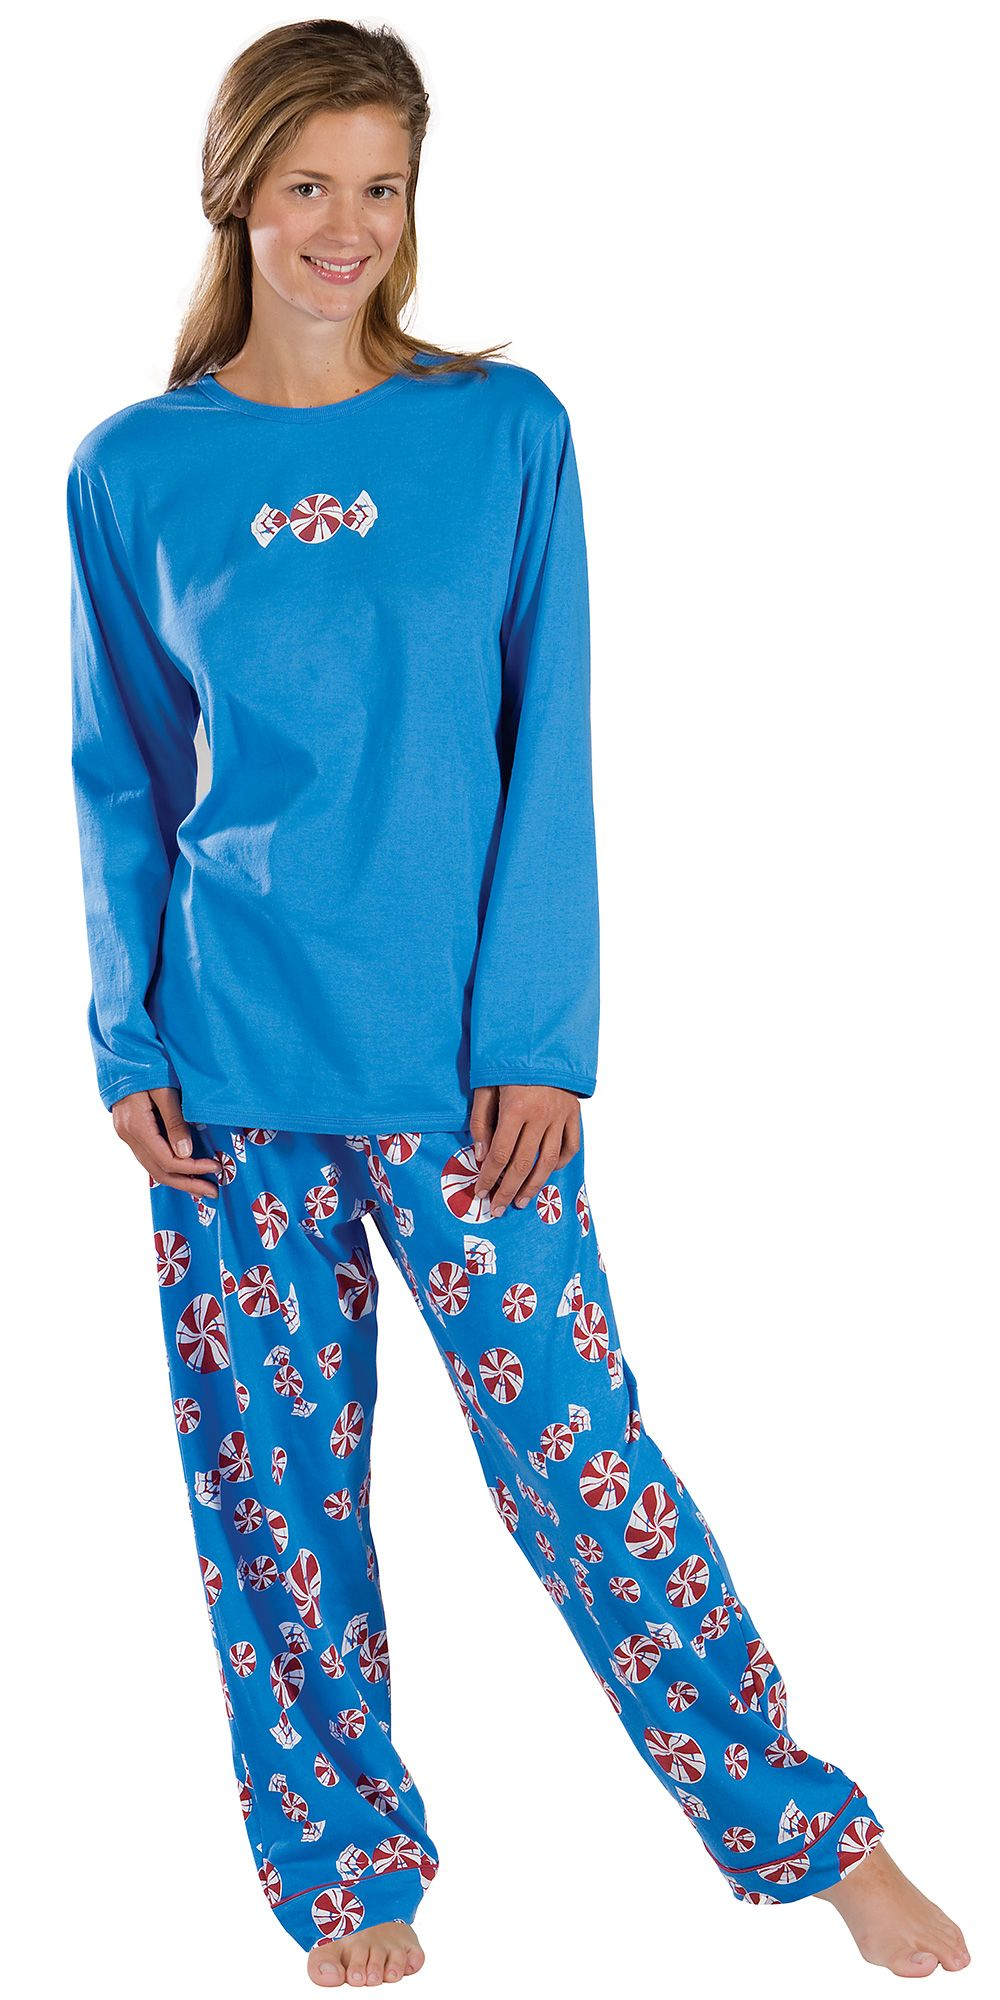 peppermint pajamas Peppermint Pajamas for Women